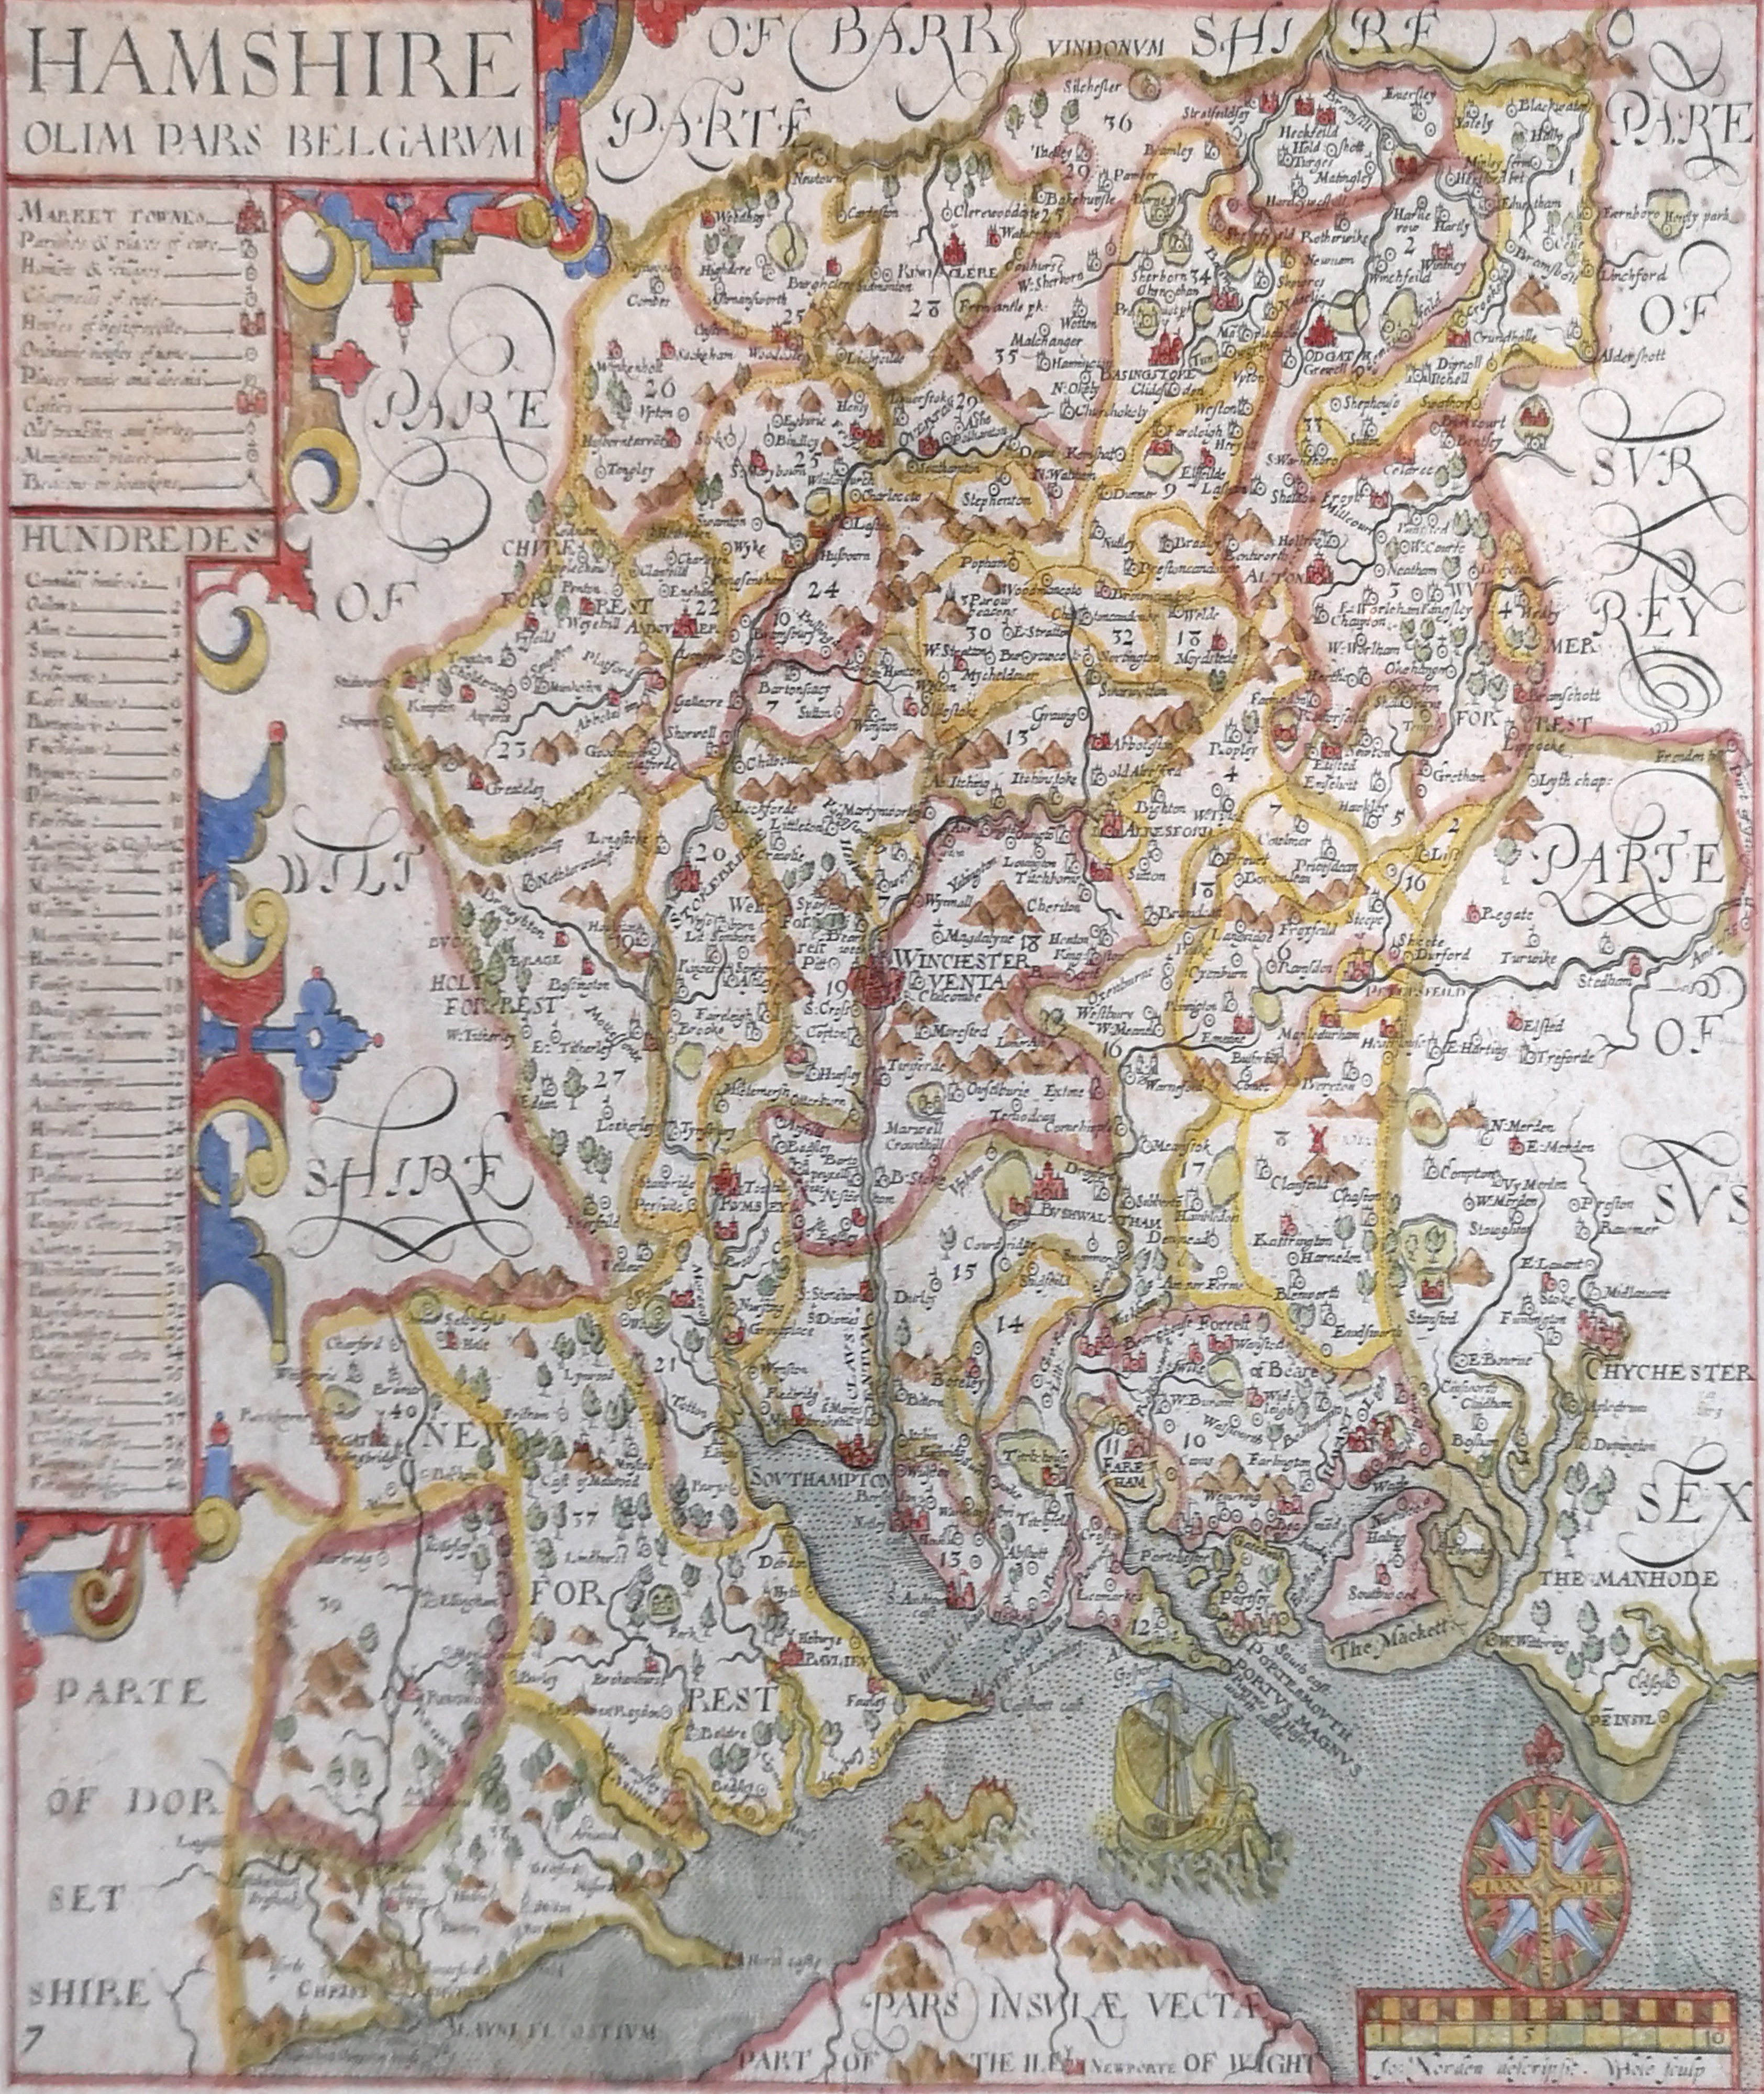 Lot 500 - AN ANTIQUE HAND COLOURED ENGRAVING, MAP OF HAMPSHIRE Printed by John Norden. Bearing a gallery label